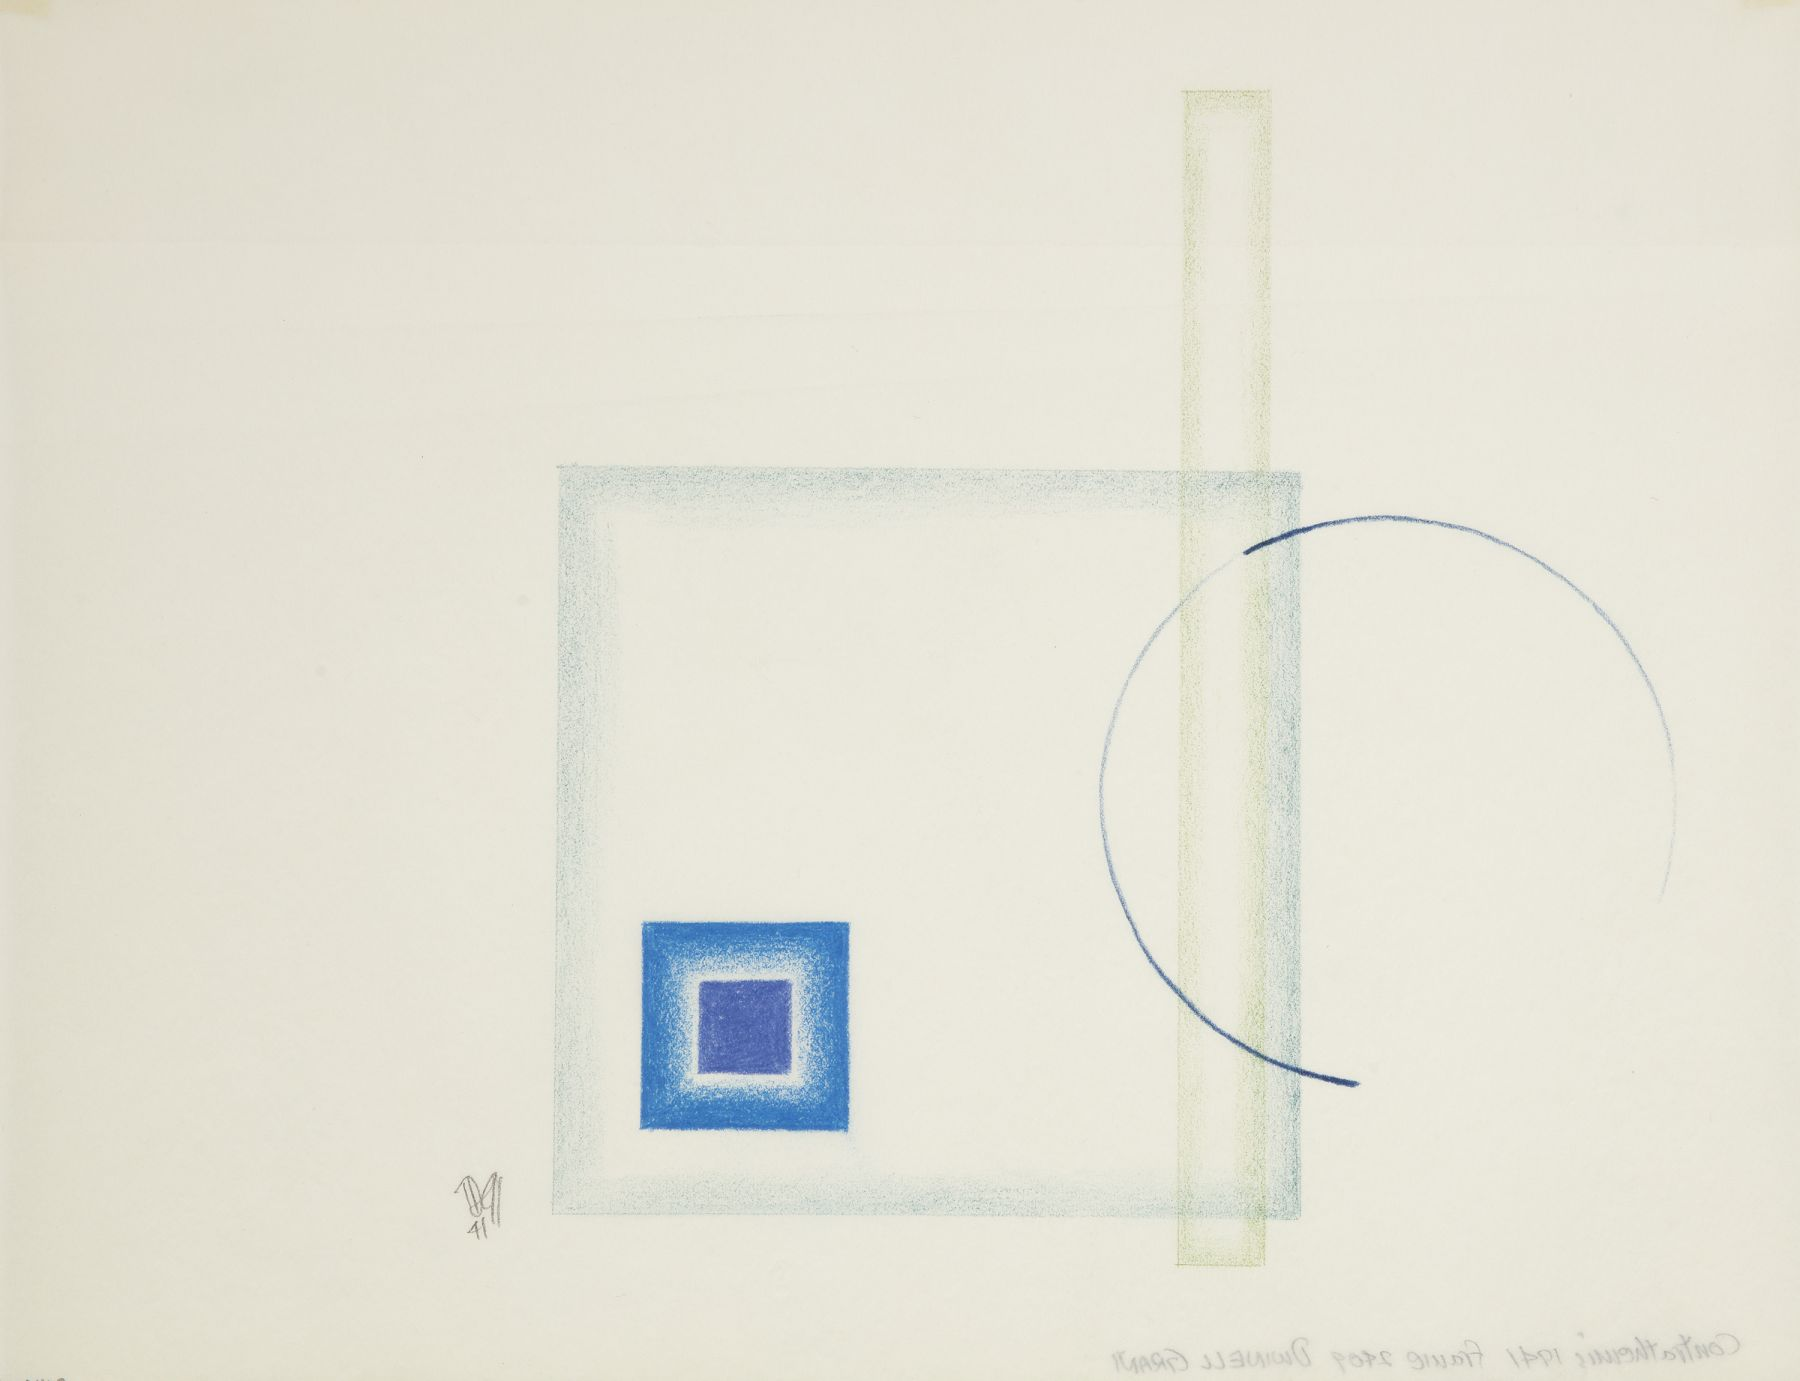 Dwinell Grant, Contrathemis Frame 2409, 1941,  Colored pencil on tracing paper, 8 x 10 1/2 inches, 3 blue squares, and one vertical sphere. Dwinell Grant made experimental modernist and constructivist films and paintings.